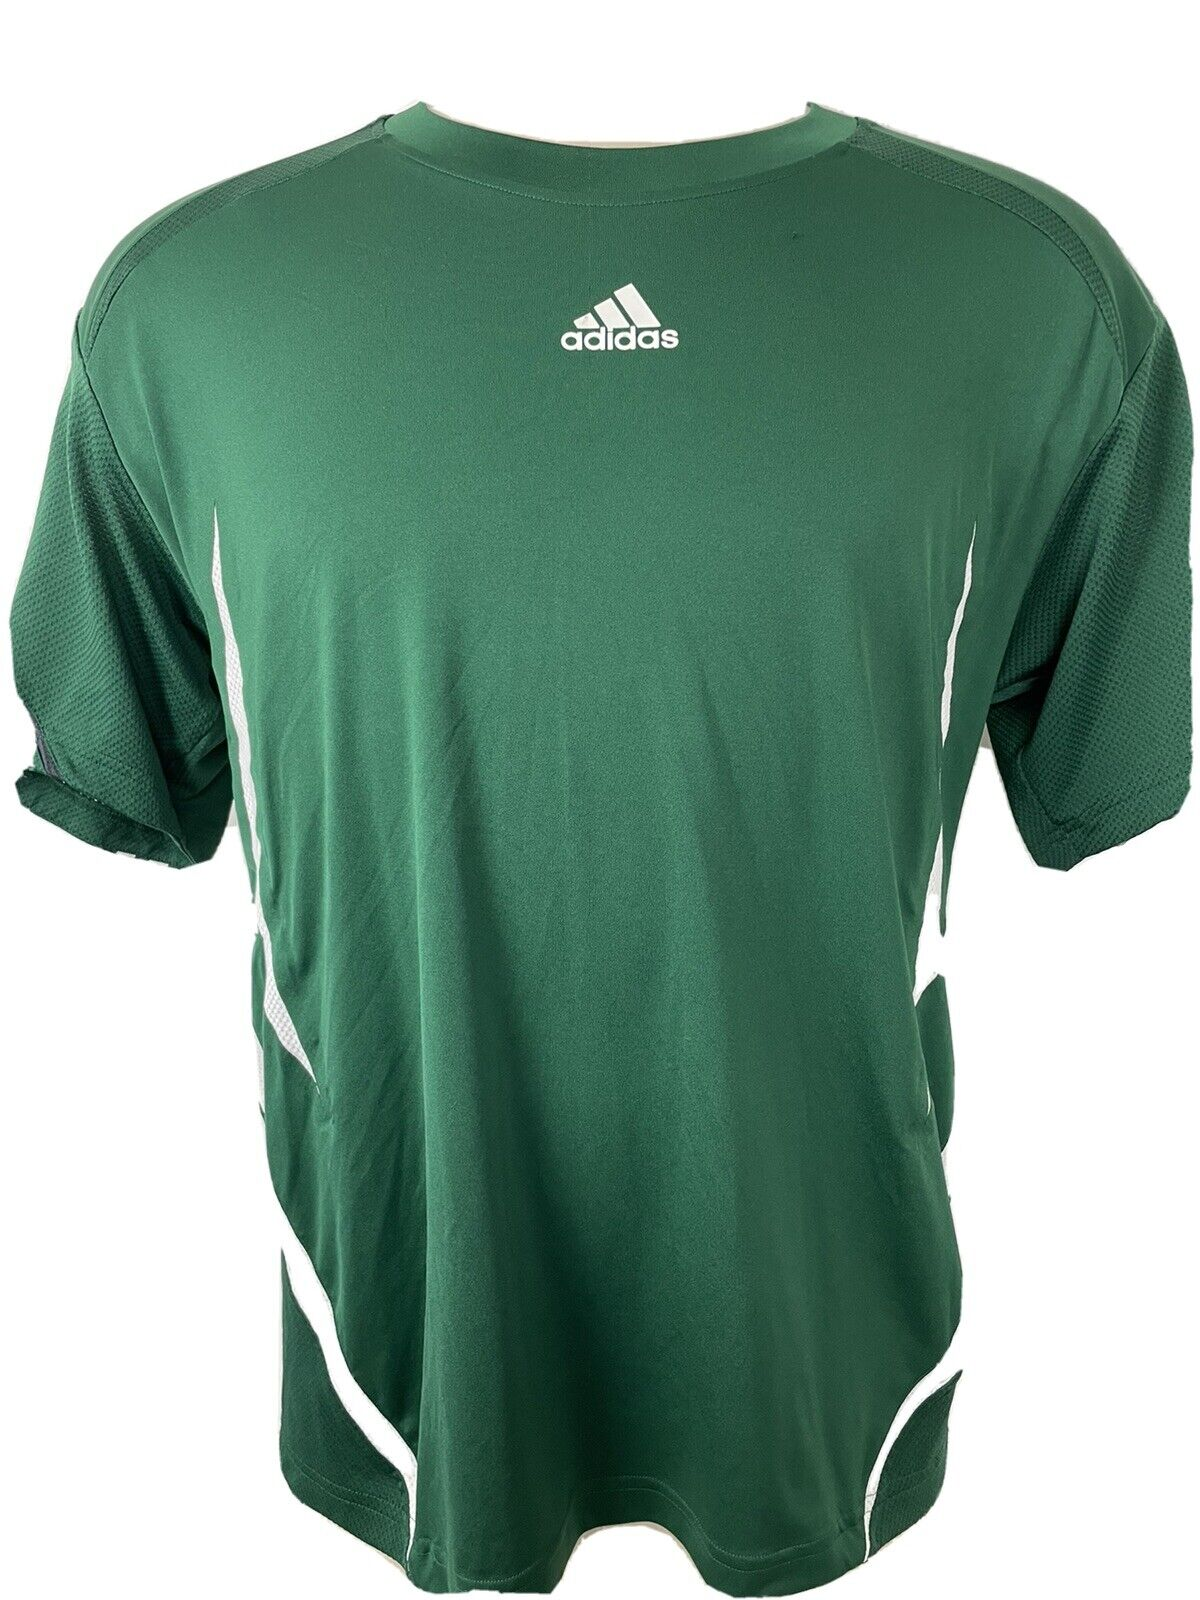 adidas Men XL Competition 3 Stripes Athletic Short Sleeve Jersey ...